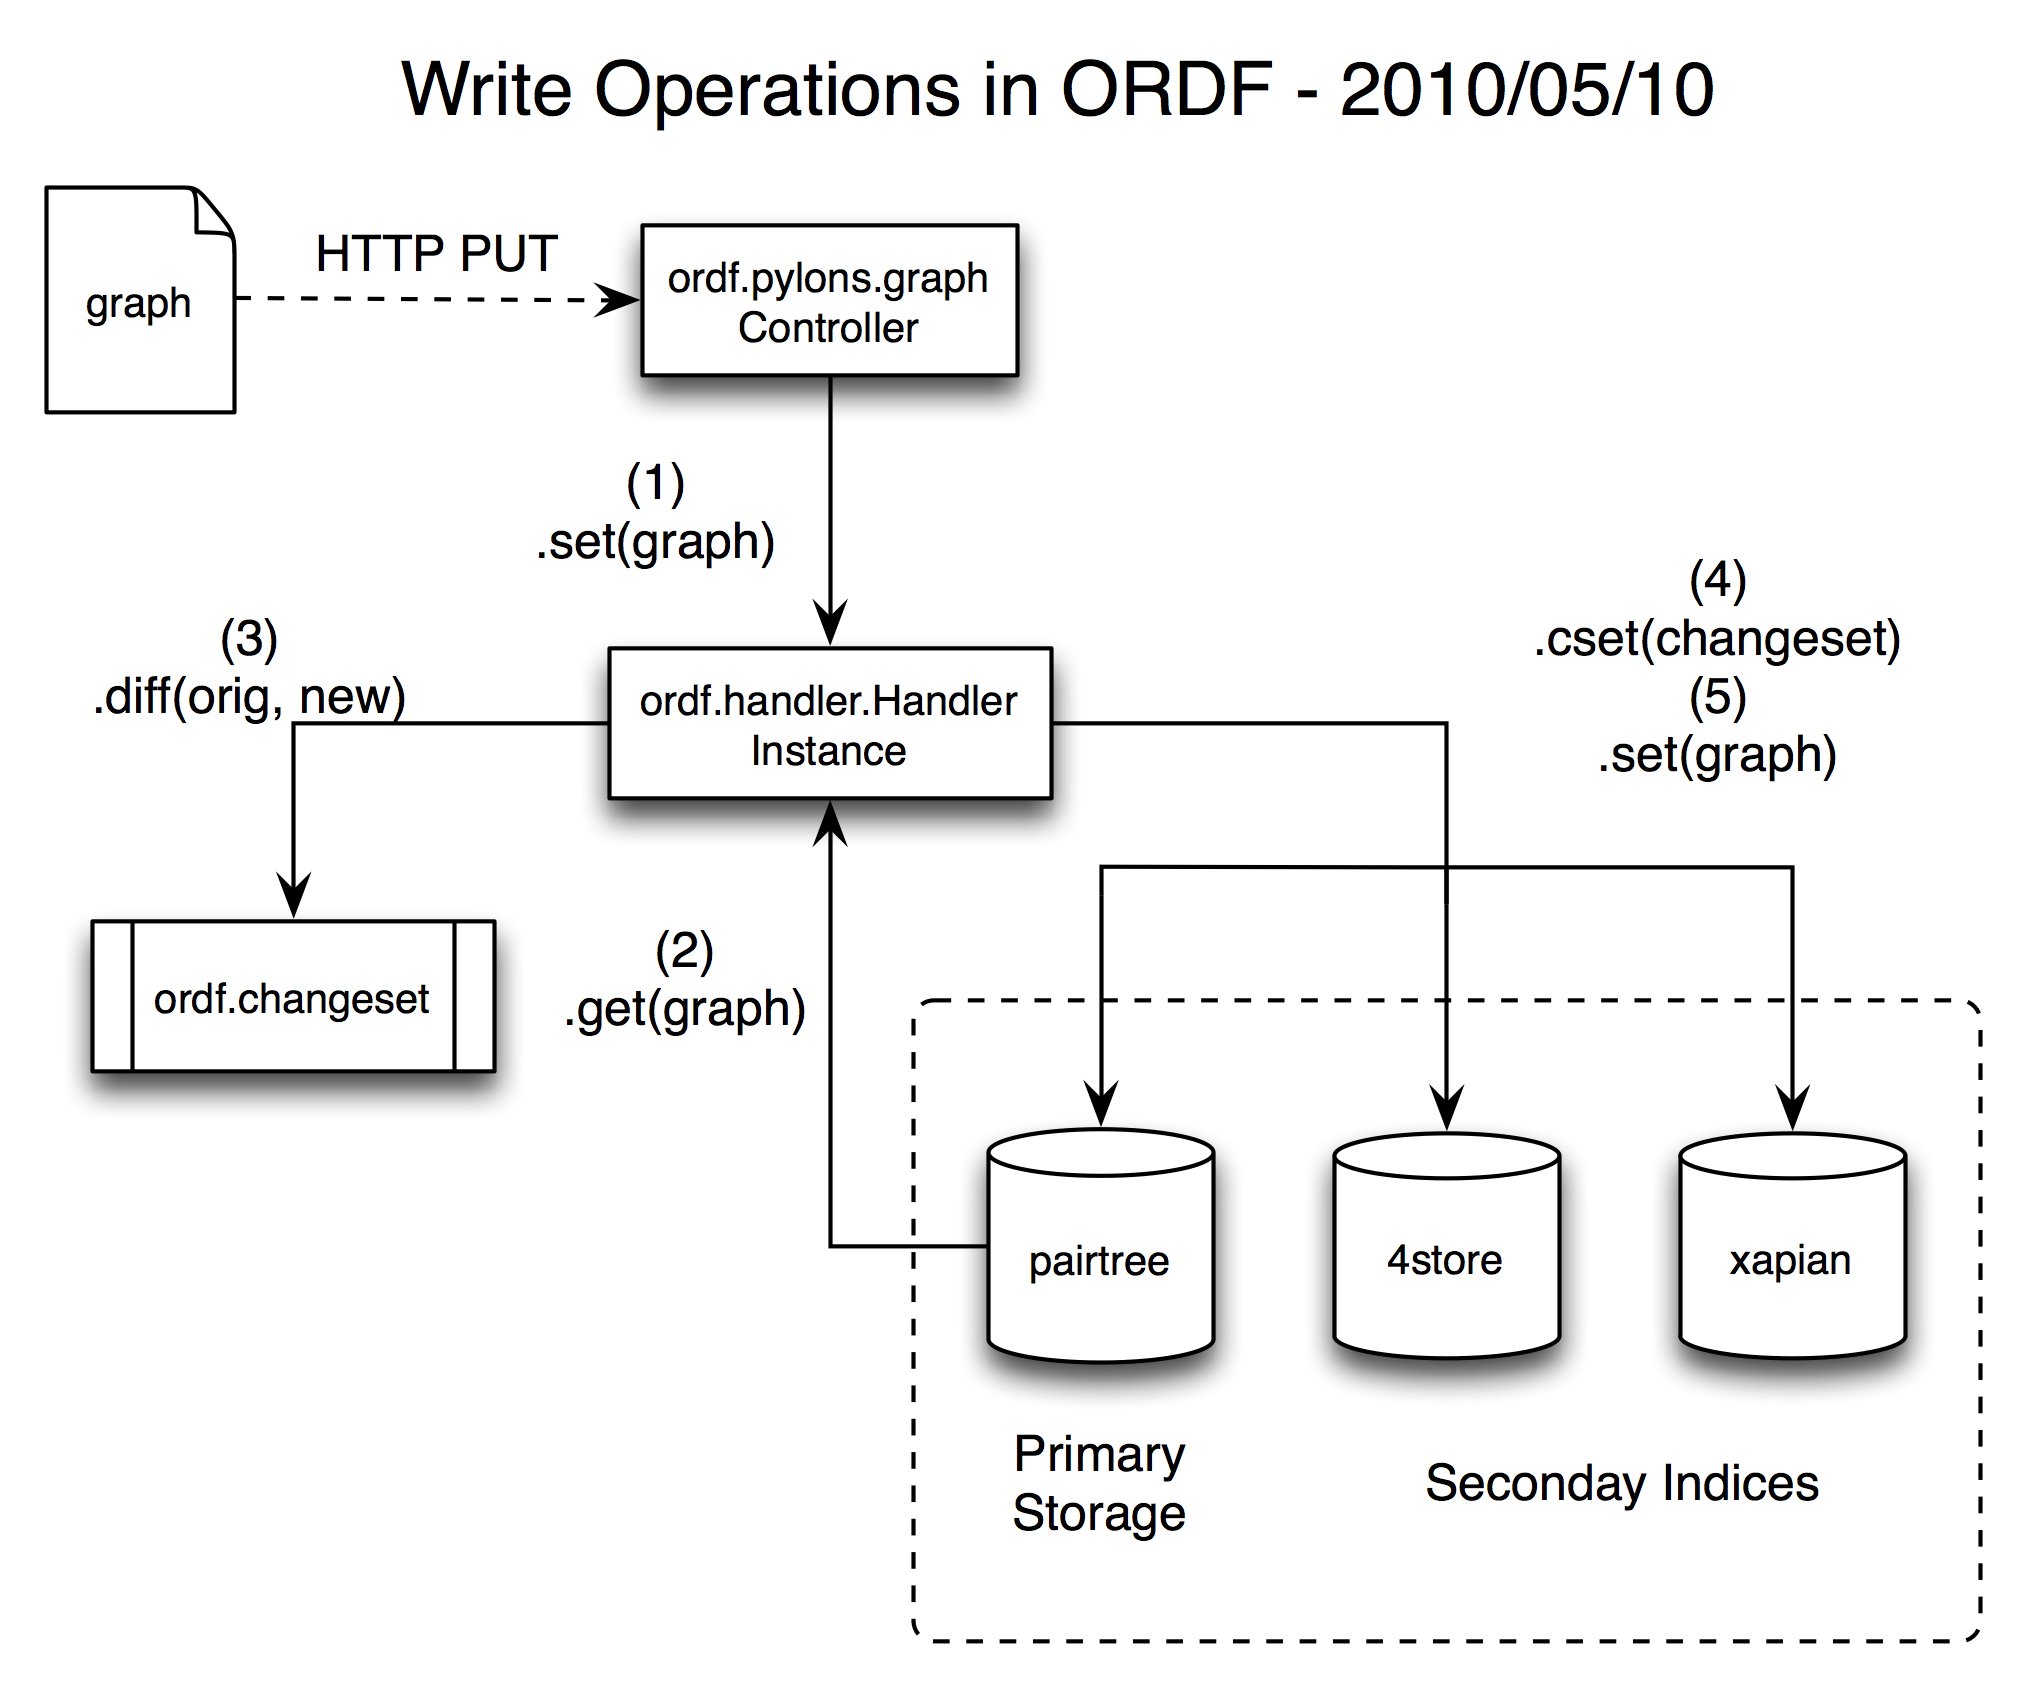 Write operations in ORDF diagram